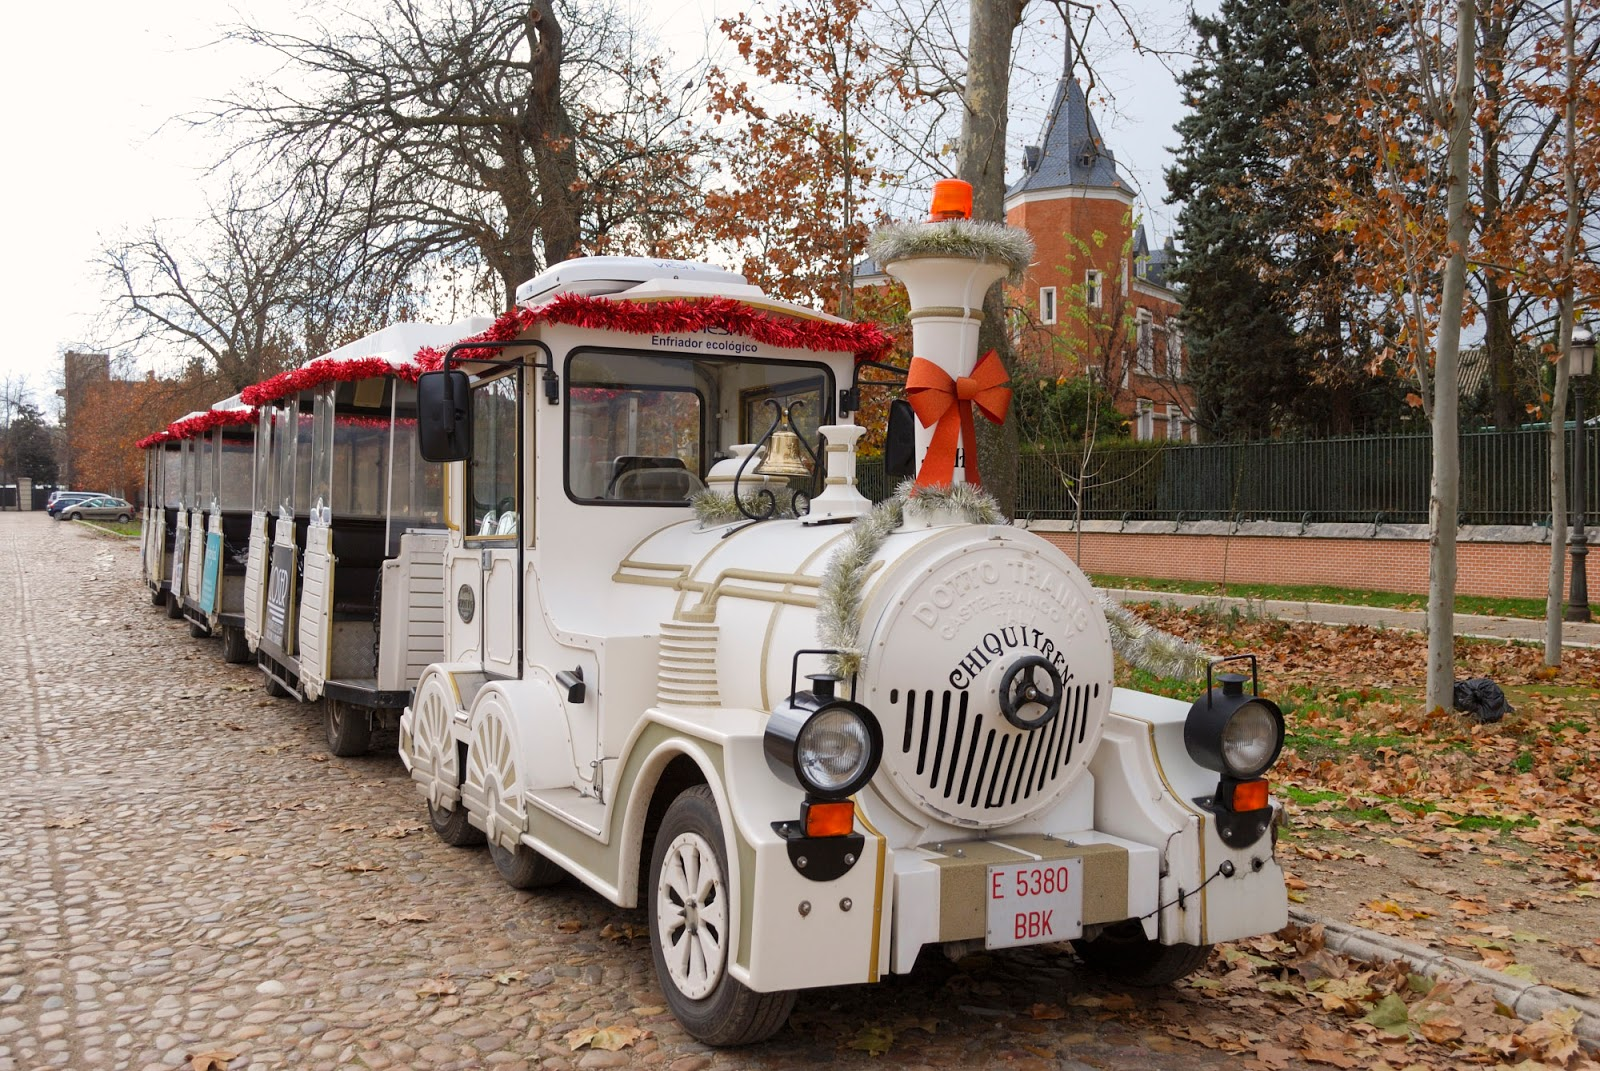 aranjuez madrid winter royal palace gardens spain chiquitren tourist train